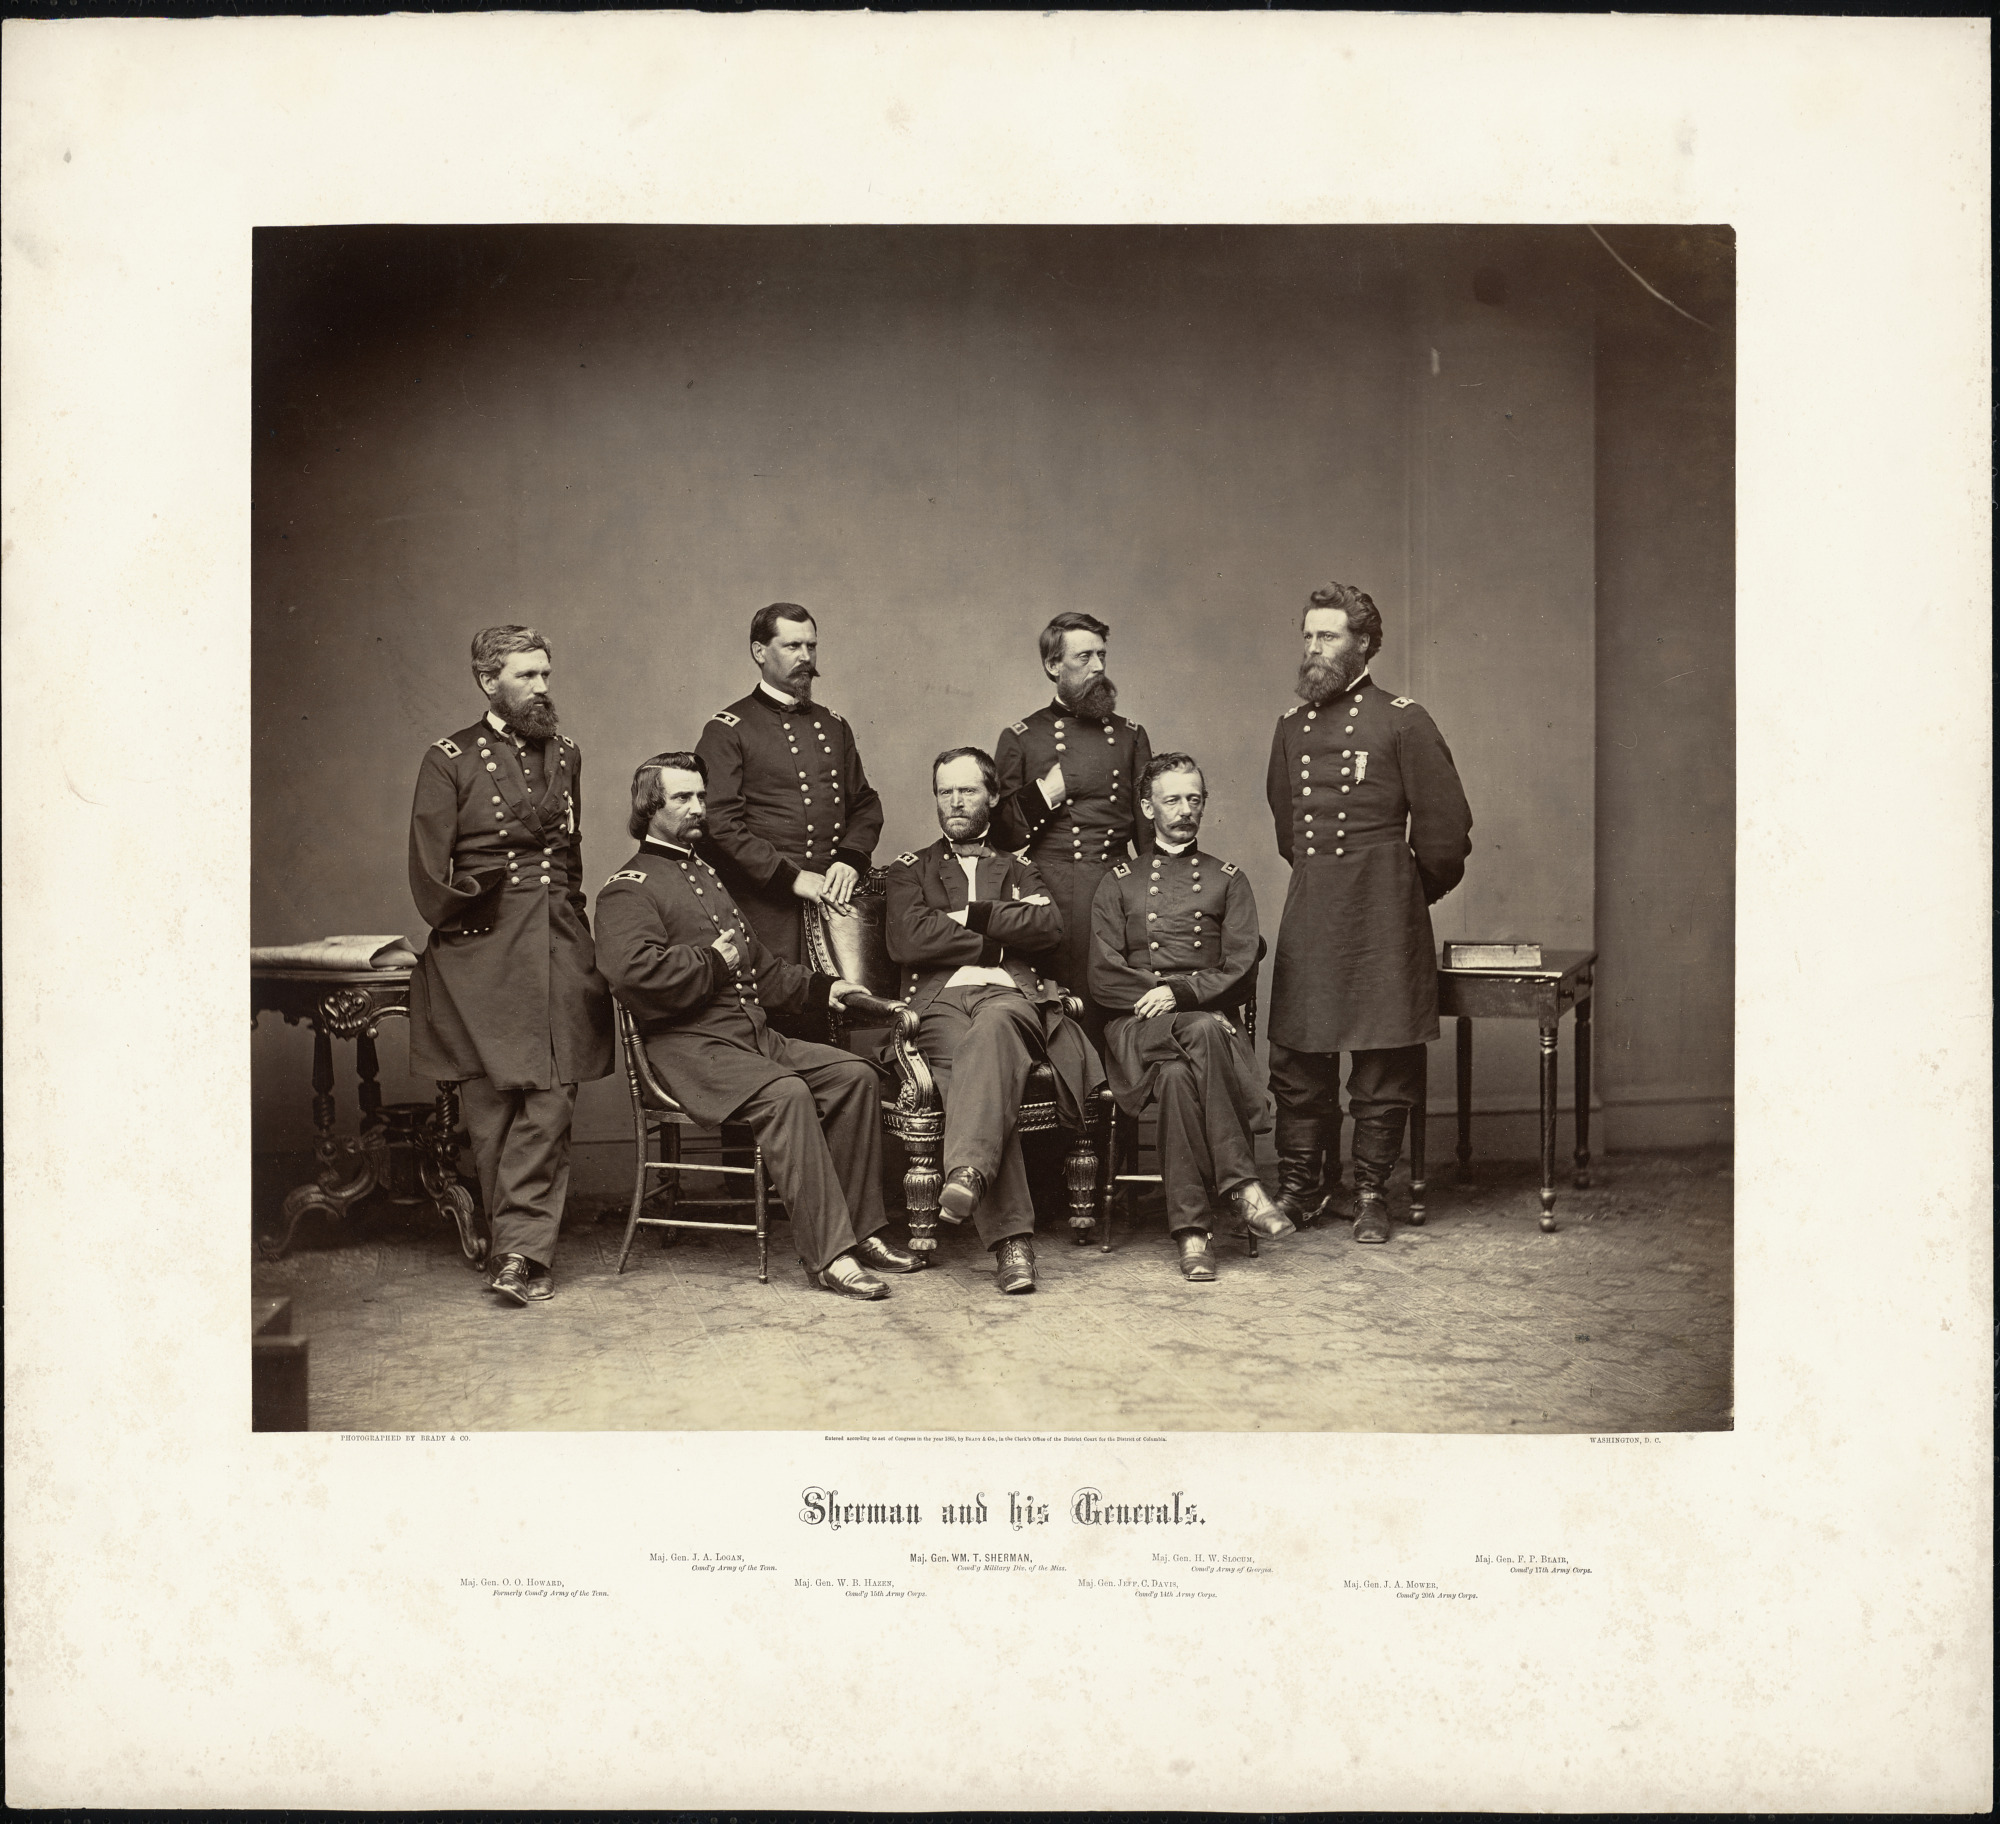 Sherman and His Generals